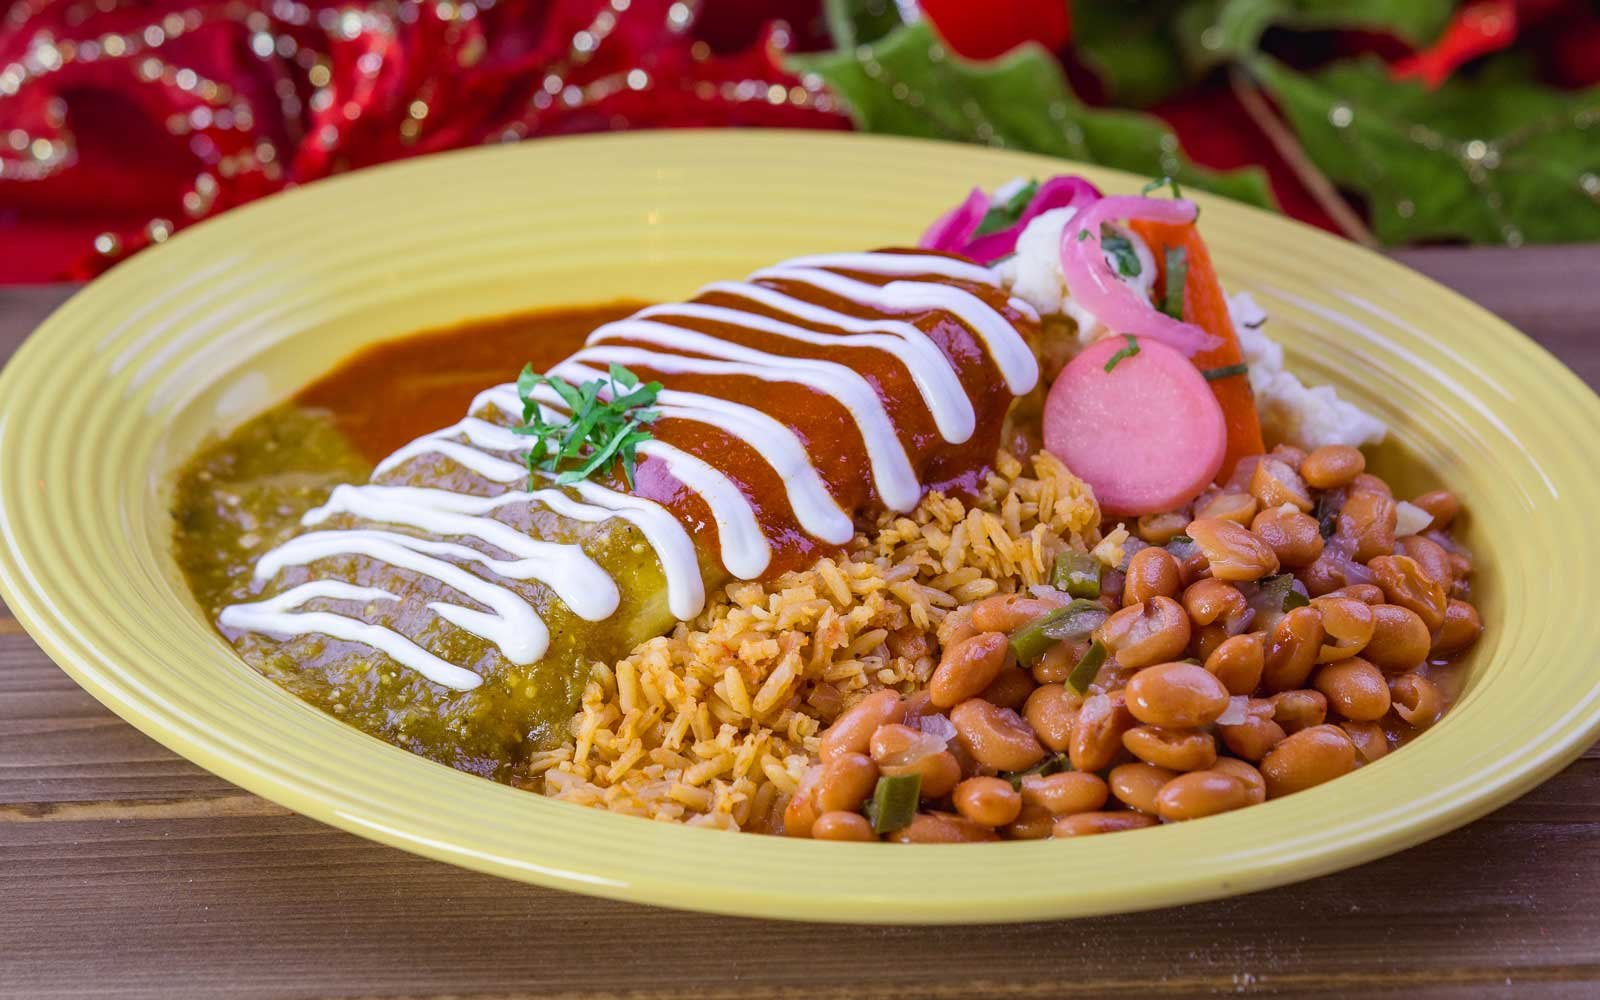 Red and green sauce on enchiladas at Disney